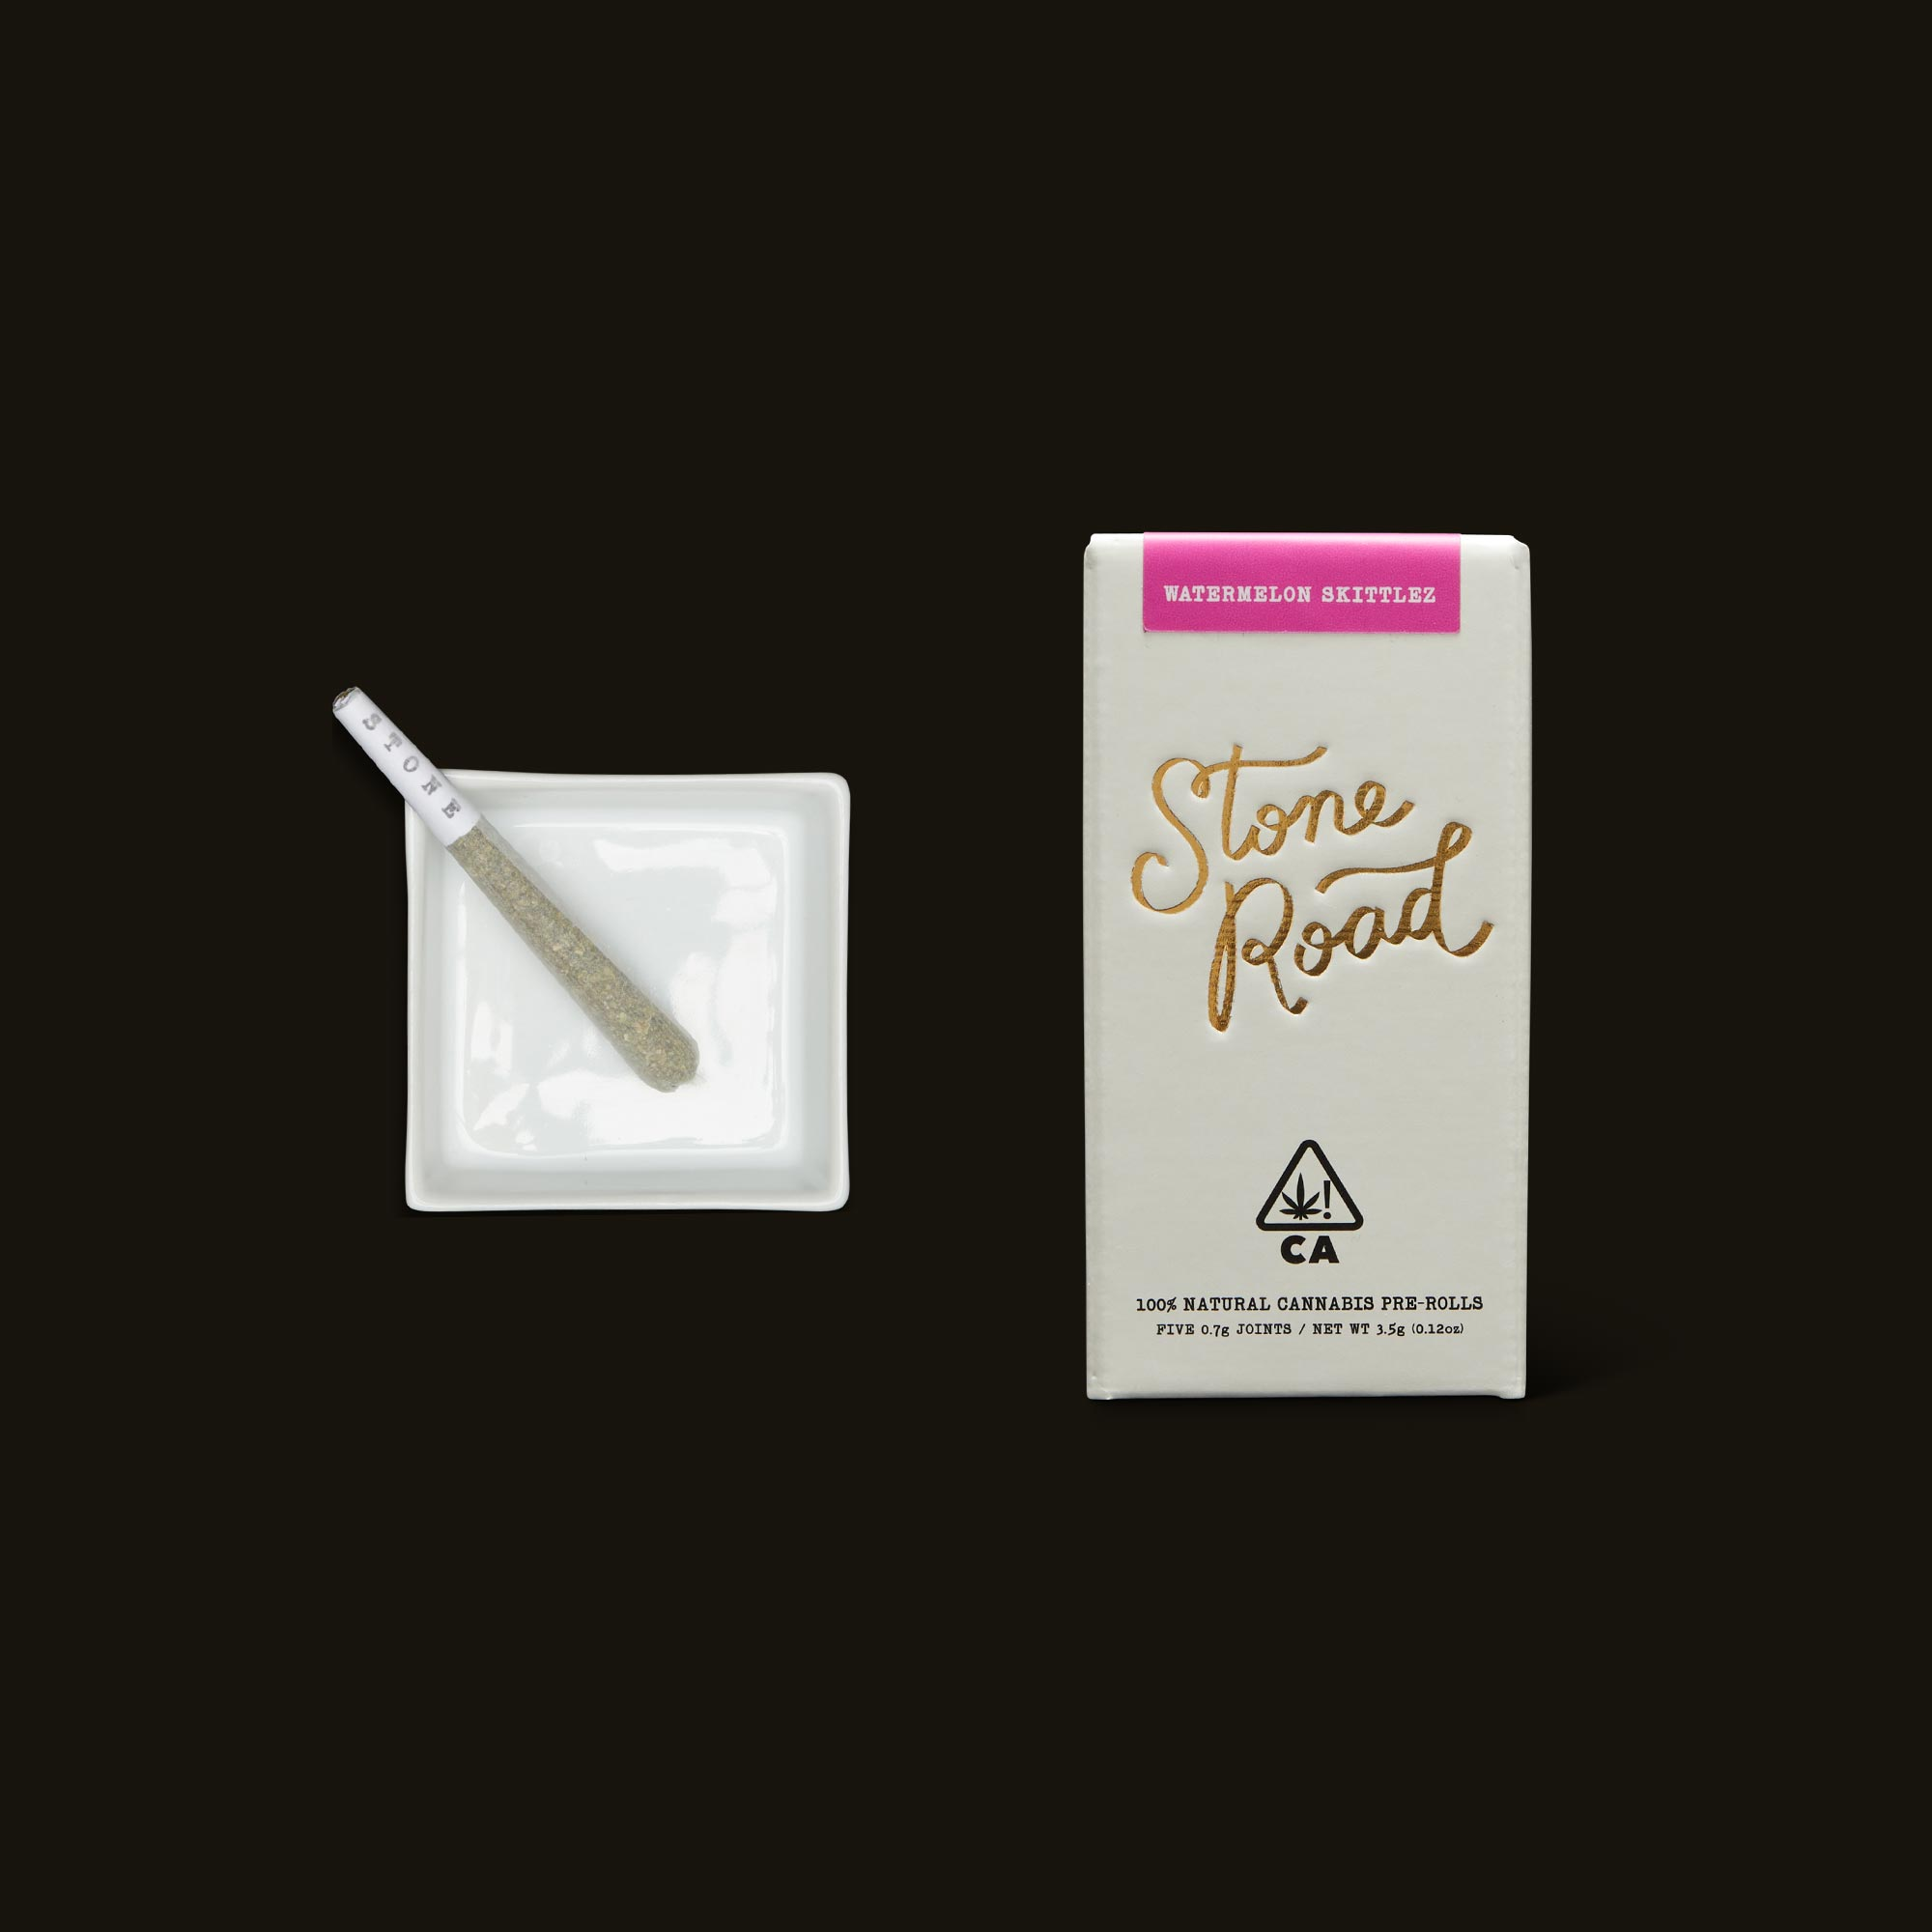 Stone Road Watermelon Skittlez Infused Pre-Roll Pack